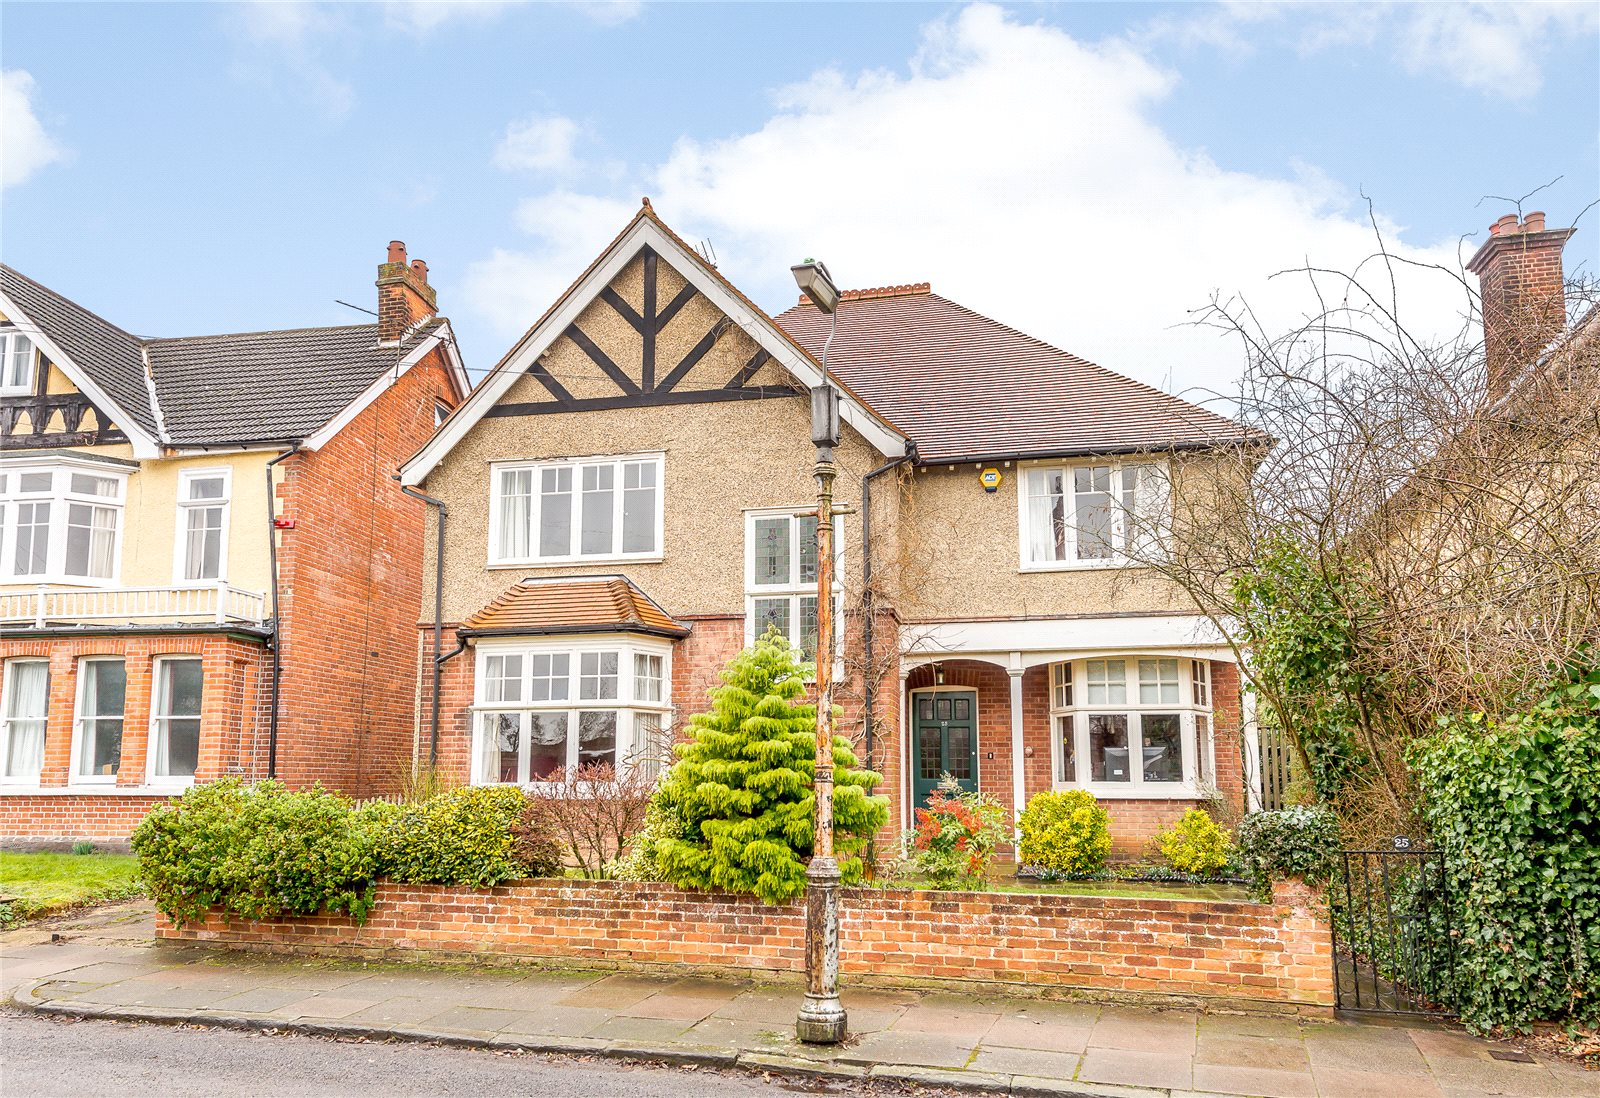 Single Family Home for Sale at Blenheim Road, St. Albans, Hertfordshire, AL1 St Albans, England